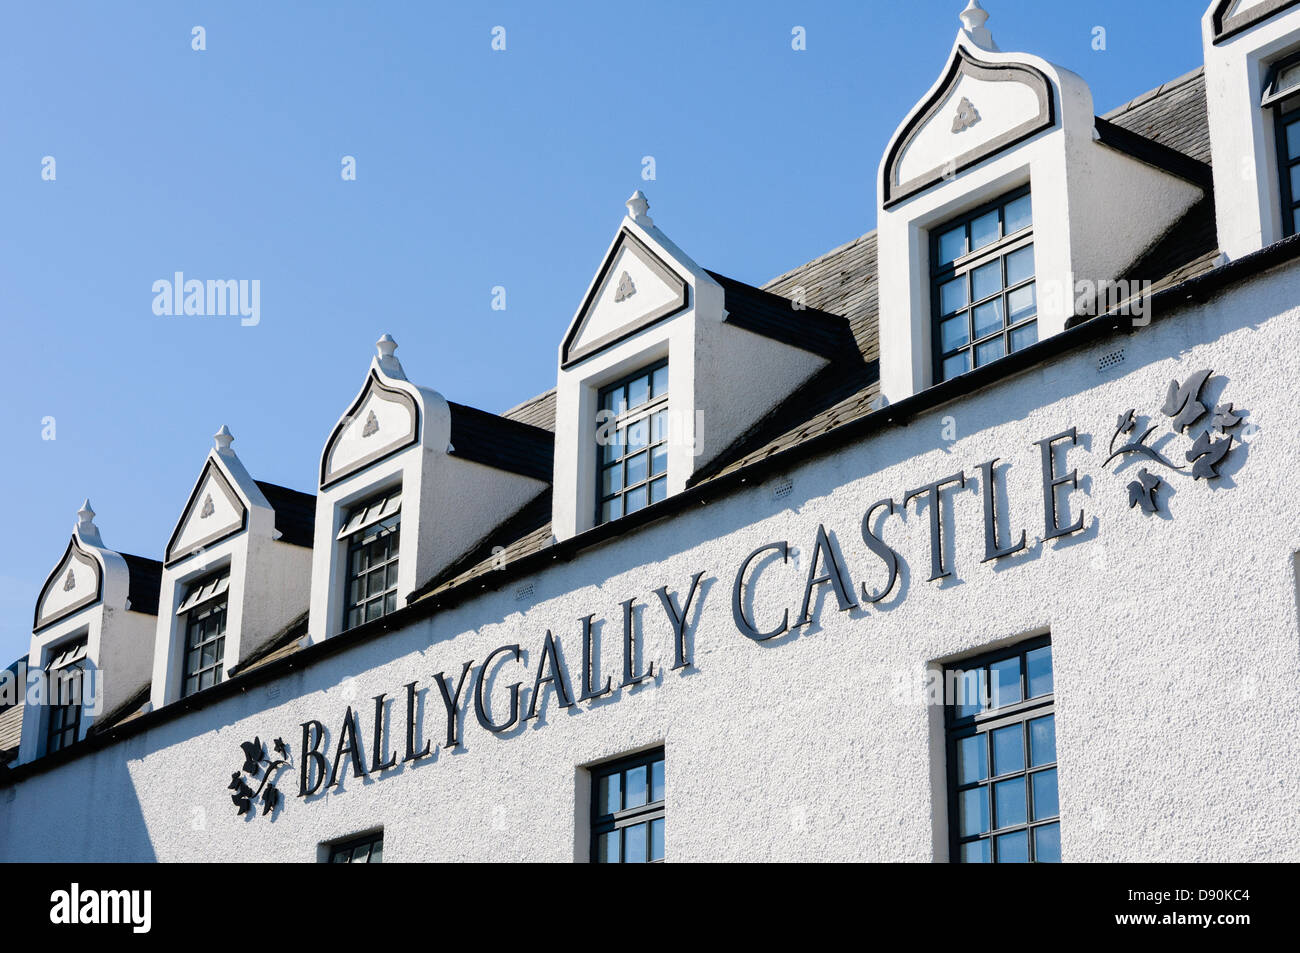 Ballygally Castle Hotel, Balleygally, Larne, County Antrim, Northern Ireland. Part of the Hastings Group of hotels. - Stock Image